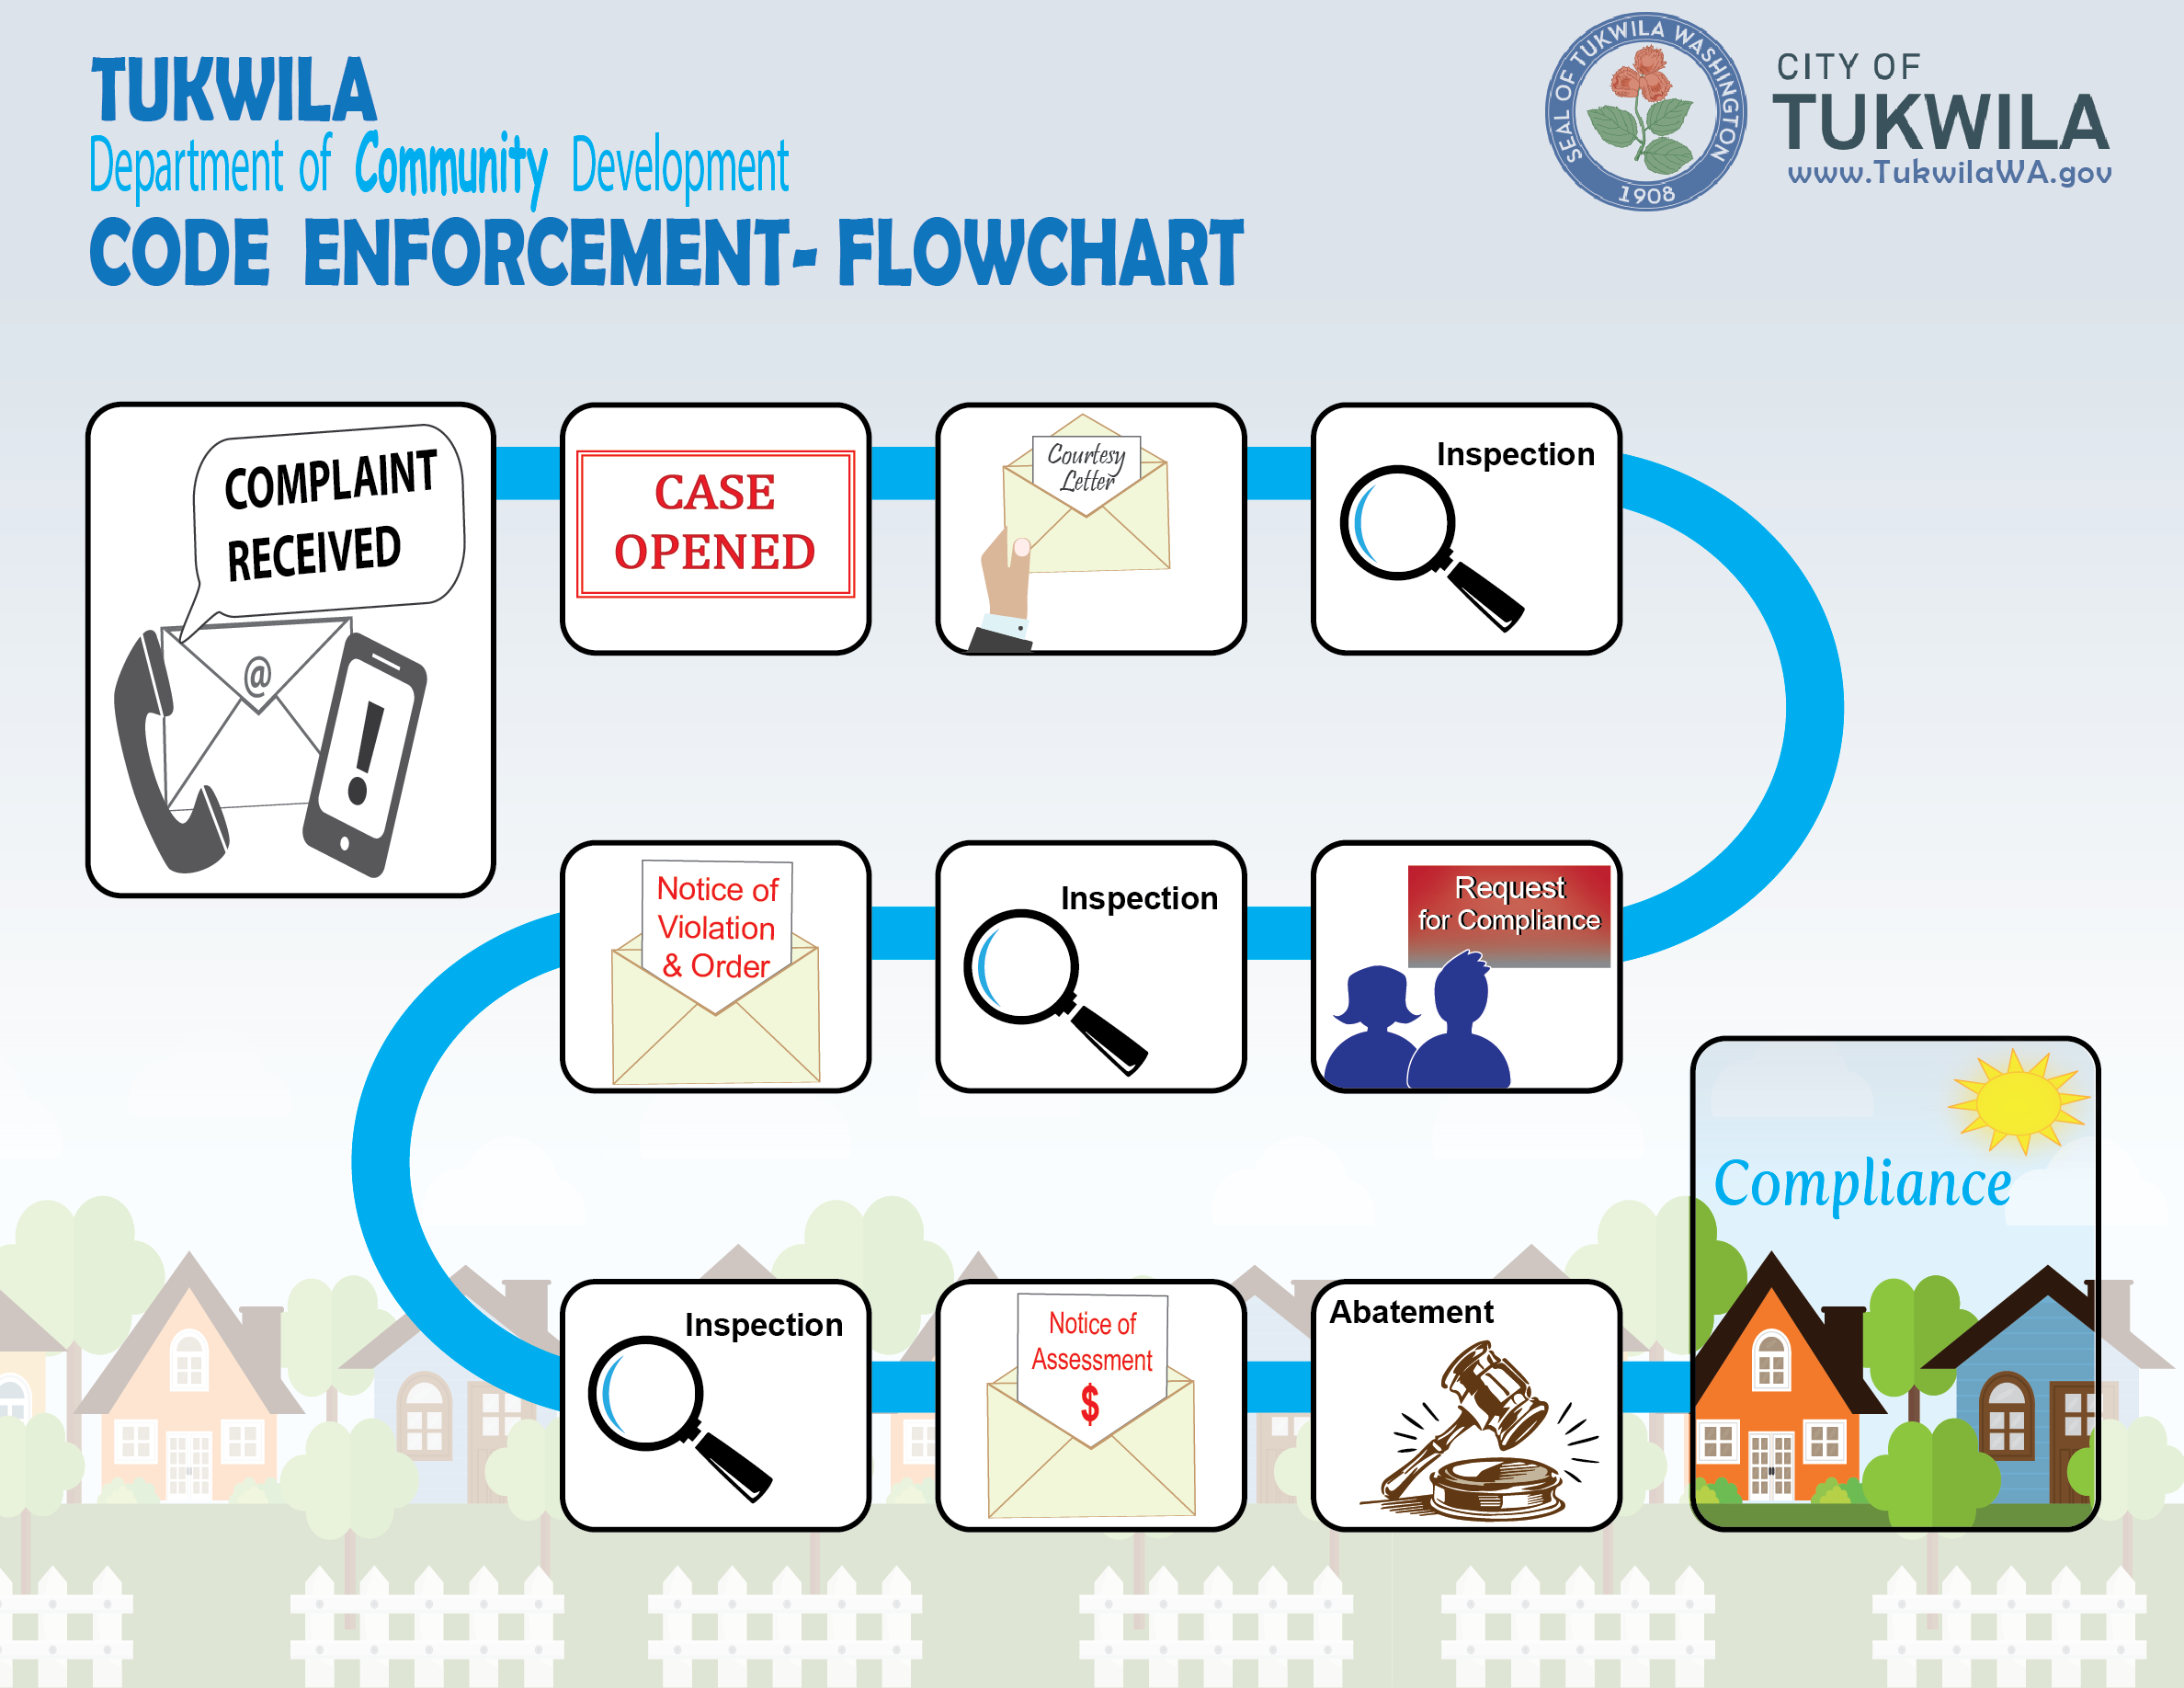 Code Enforcement Flowchart. 1) Complaint Received. 2) A Case is Opened. 3) A Courtesy Letter Sent. 4) A Code Enforcement Officer Inspects the property. 5) A Request for Compliance is issued. 6) another Inspection. 7) A Notice of Violation and Order is issued. 8) Inspection to check compliance. 9) A Notice of Assessment is issued. 10) If the property is still in violation court ordered Abatement is required. 11) Final Stage: Compliance